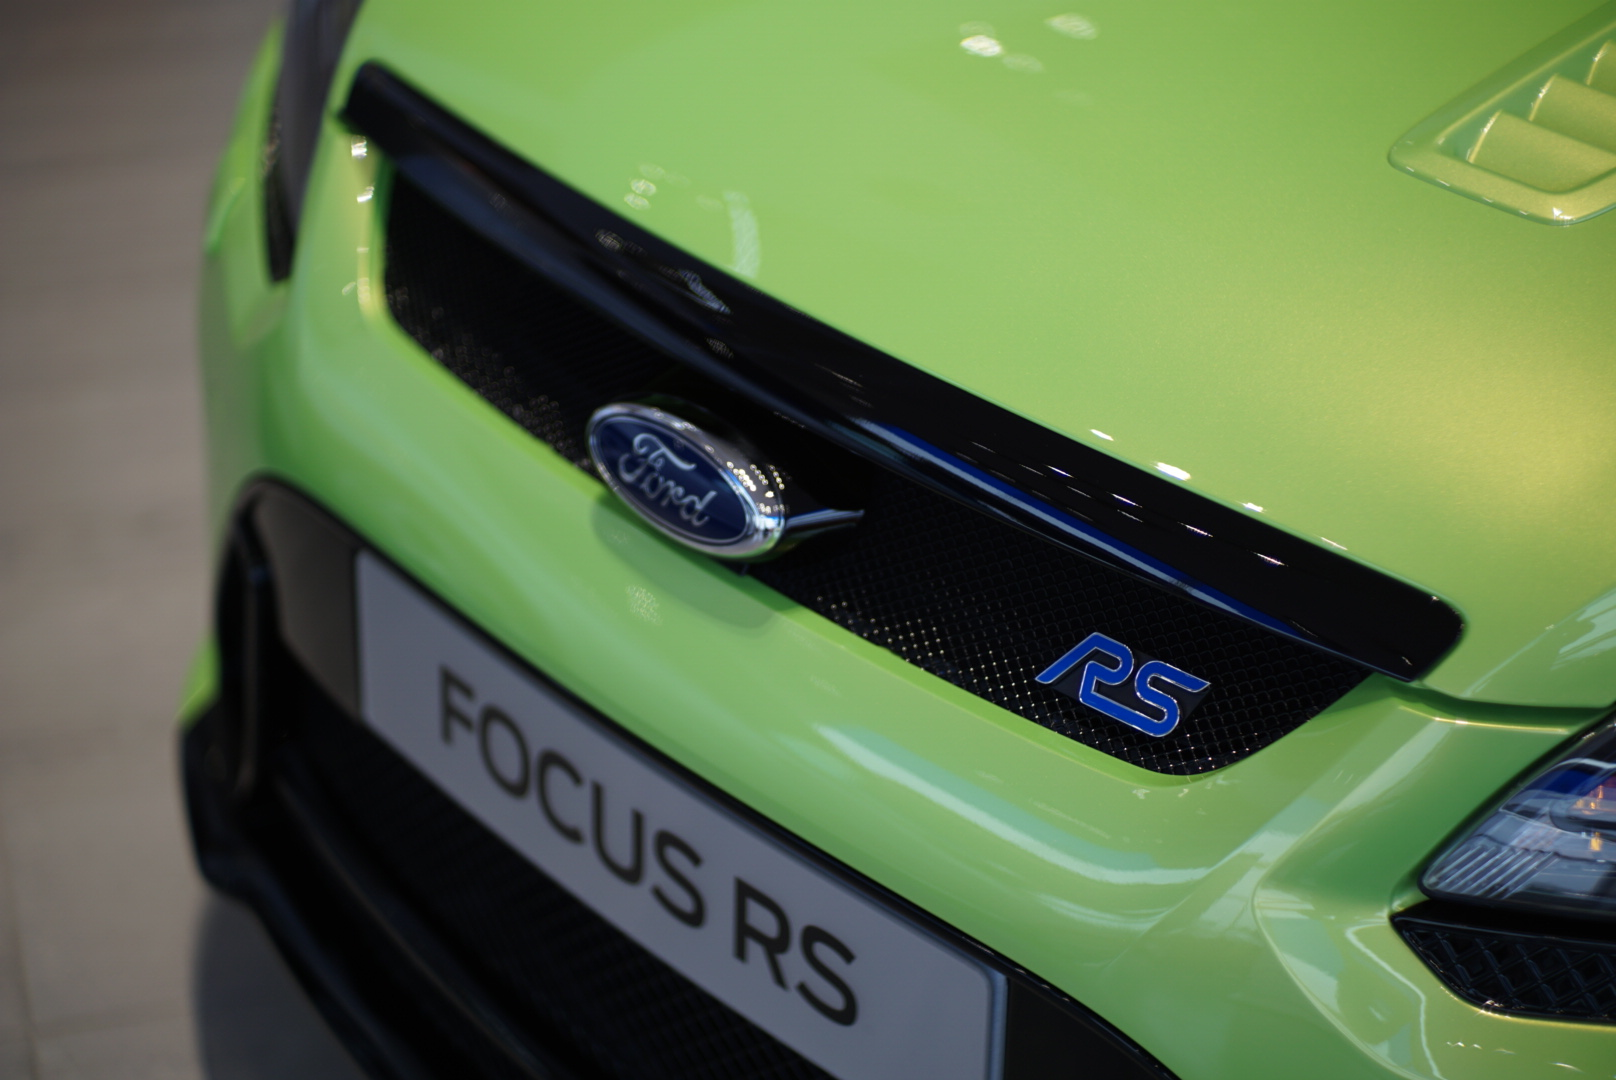 Front of the FOcus RS Badge